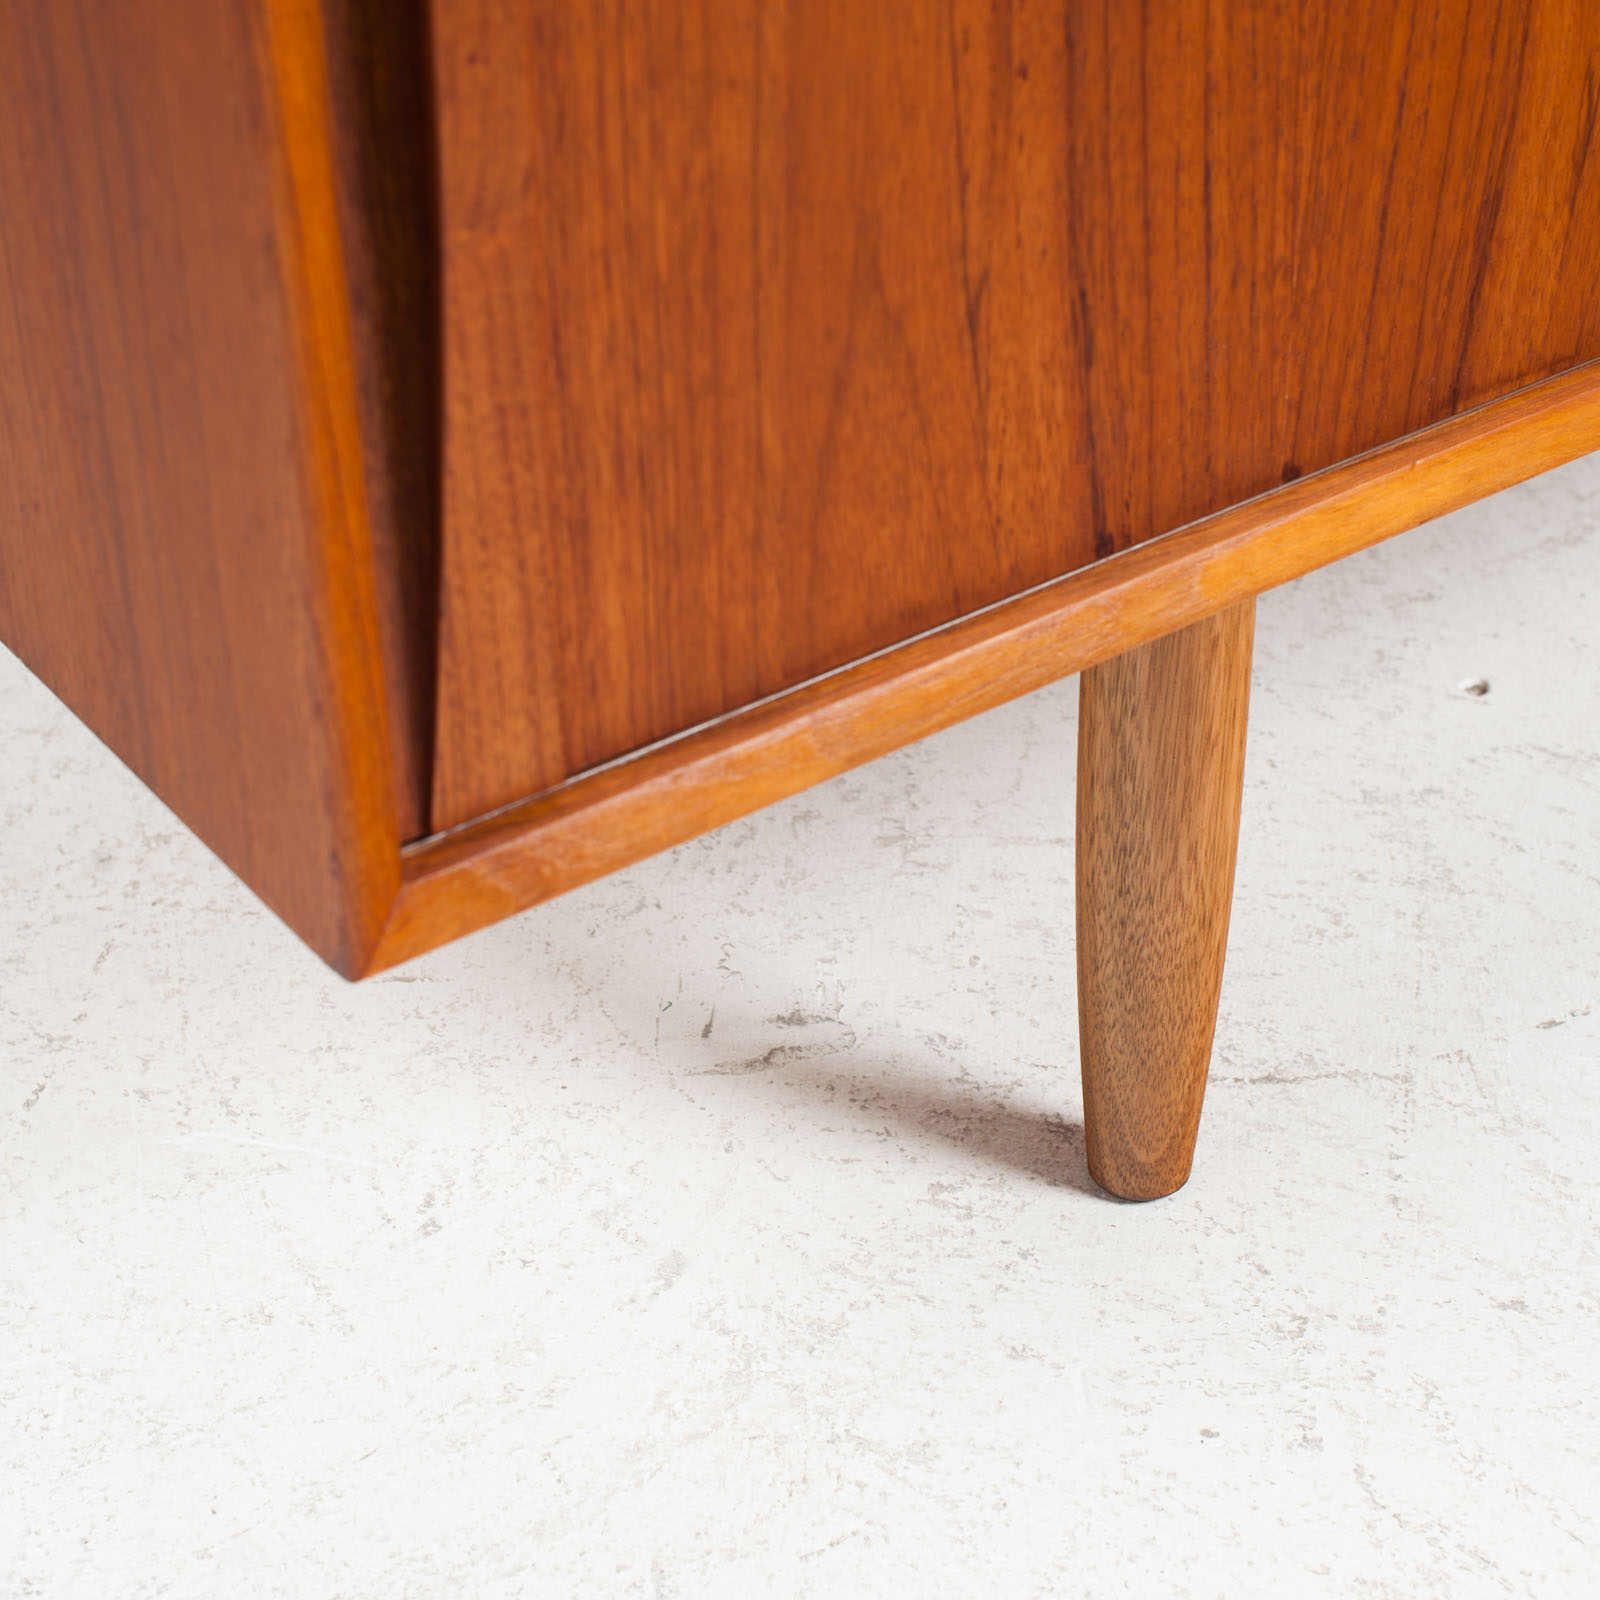 Sideboard In Teak With Two Sliding Drawers 1960s Denmark 09